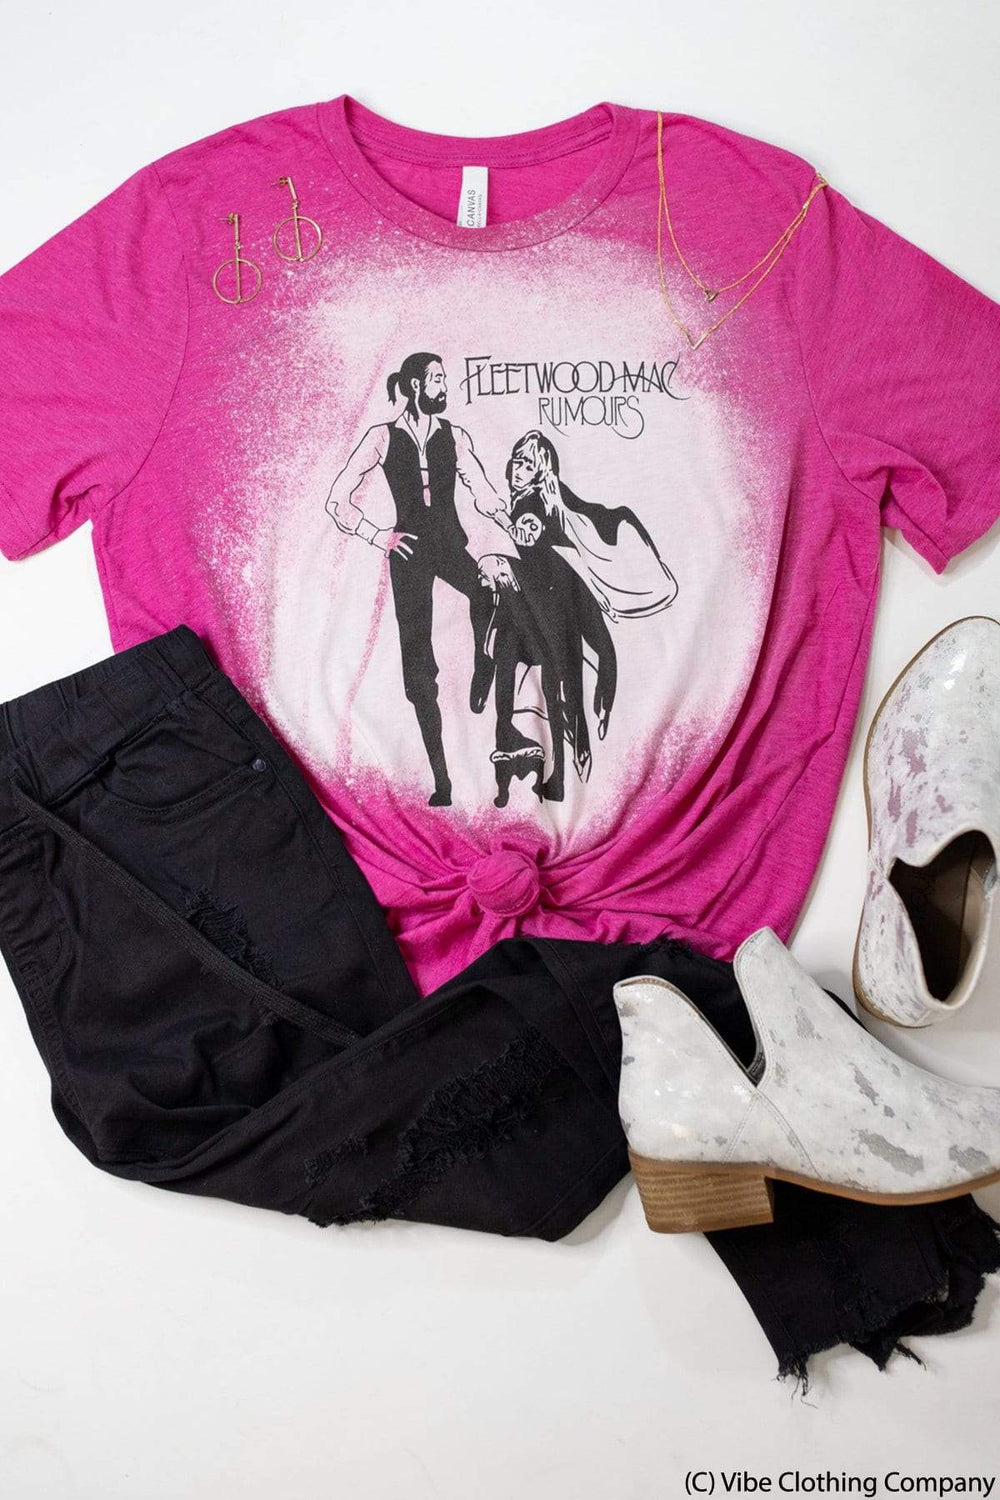 Rumors Graphic Tee graphic tees Mark tee Small H Pink